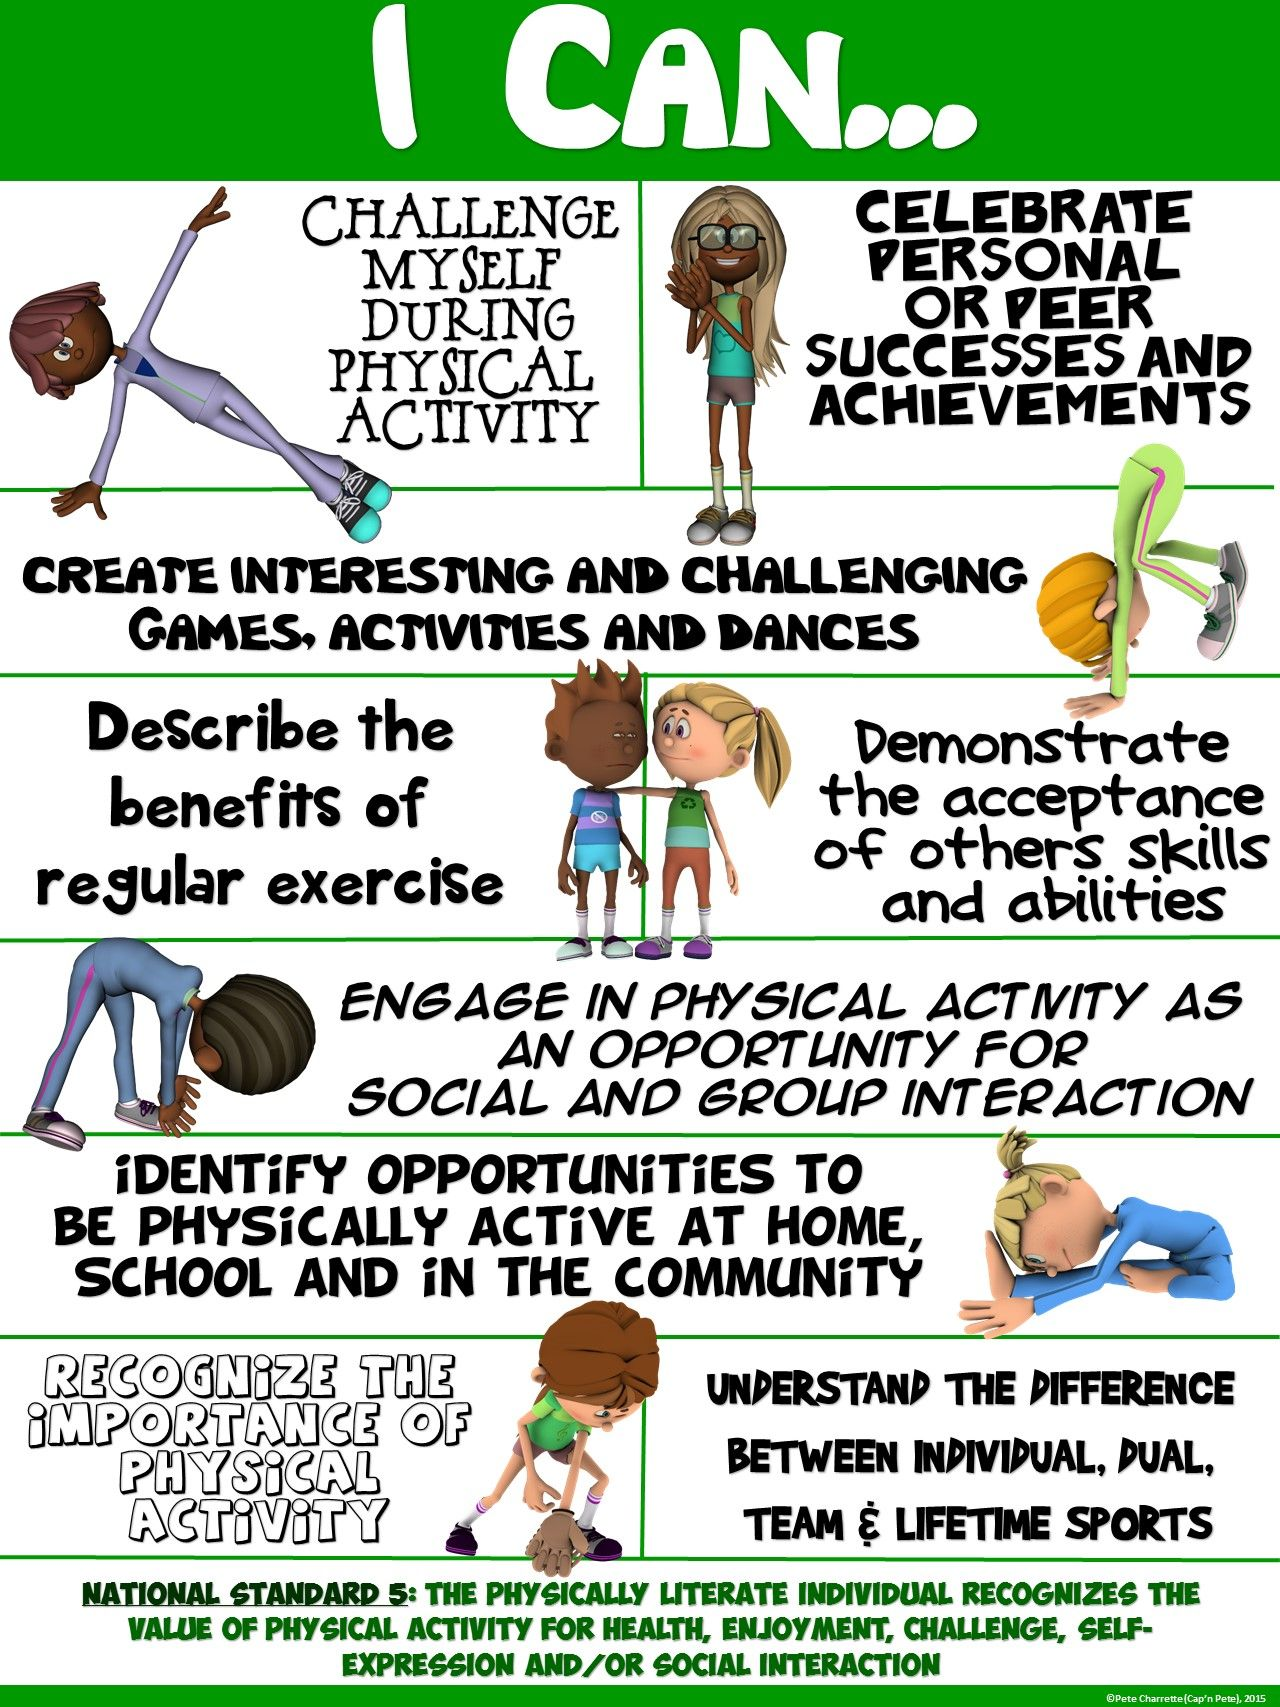 Pe Poster I Can Statements Standard 5 Seeing The Value Of Physical Activity